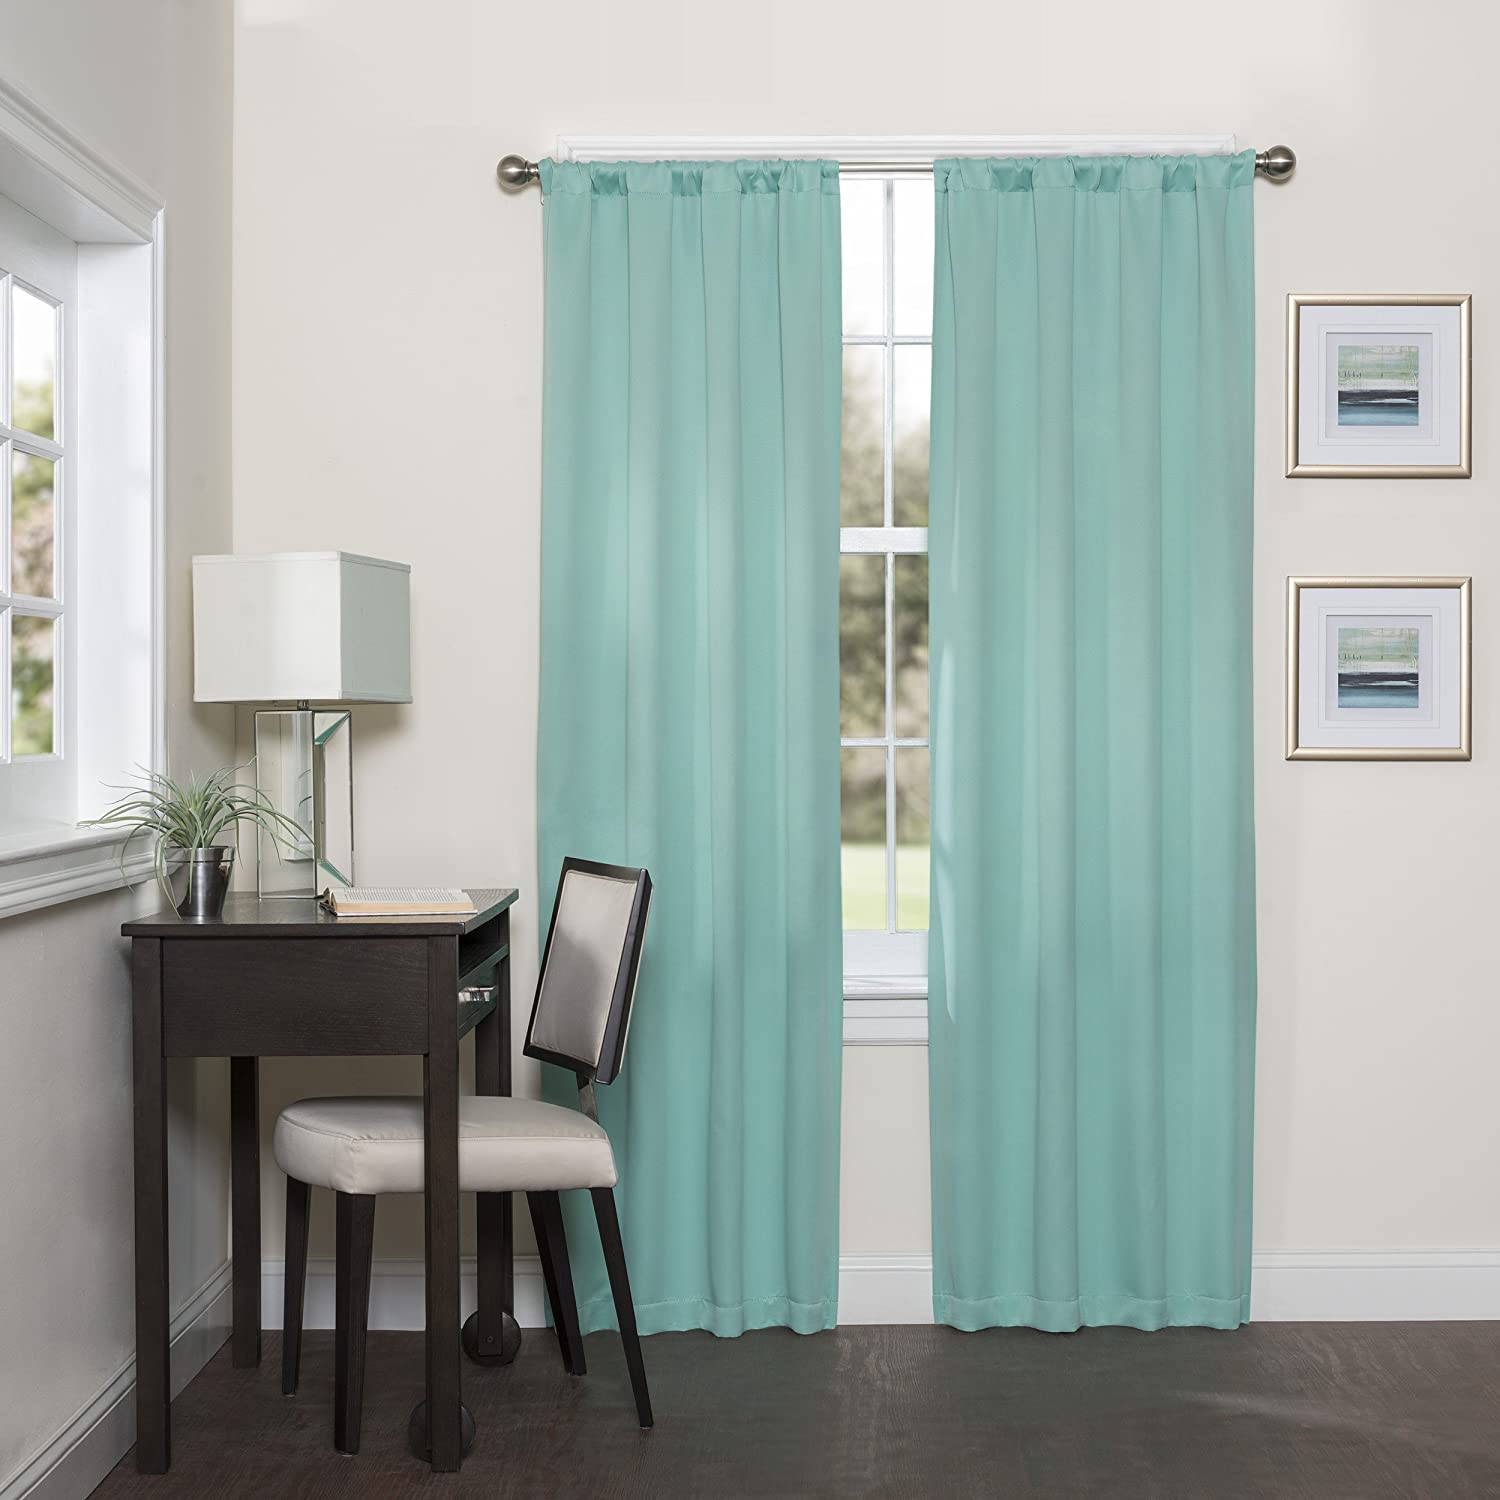 """ECLIPSE Room Darkening Curtains for Bedroom - Darrell 37"""" x 84"""" Thermal Insulated Single Panel Rod Pocket Light Blocking Curtains for Living Room, Mint"""